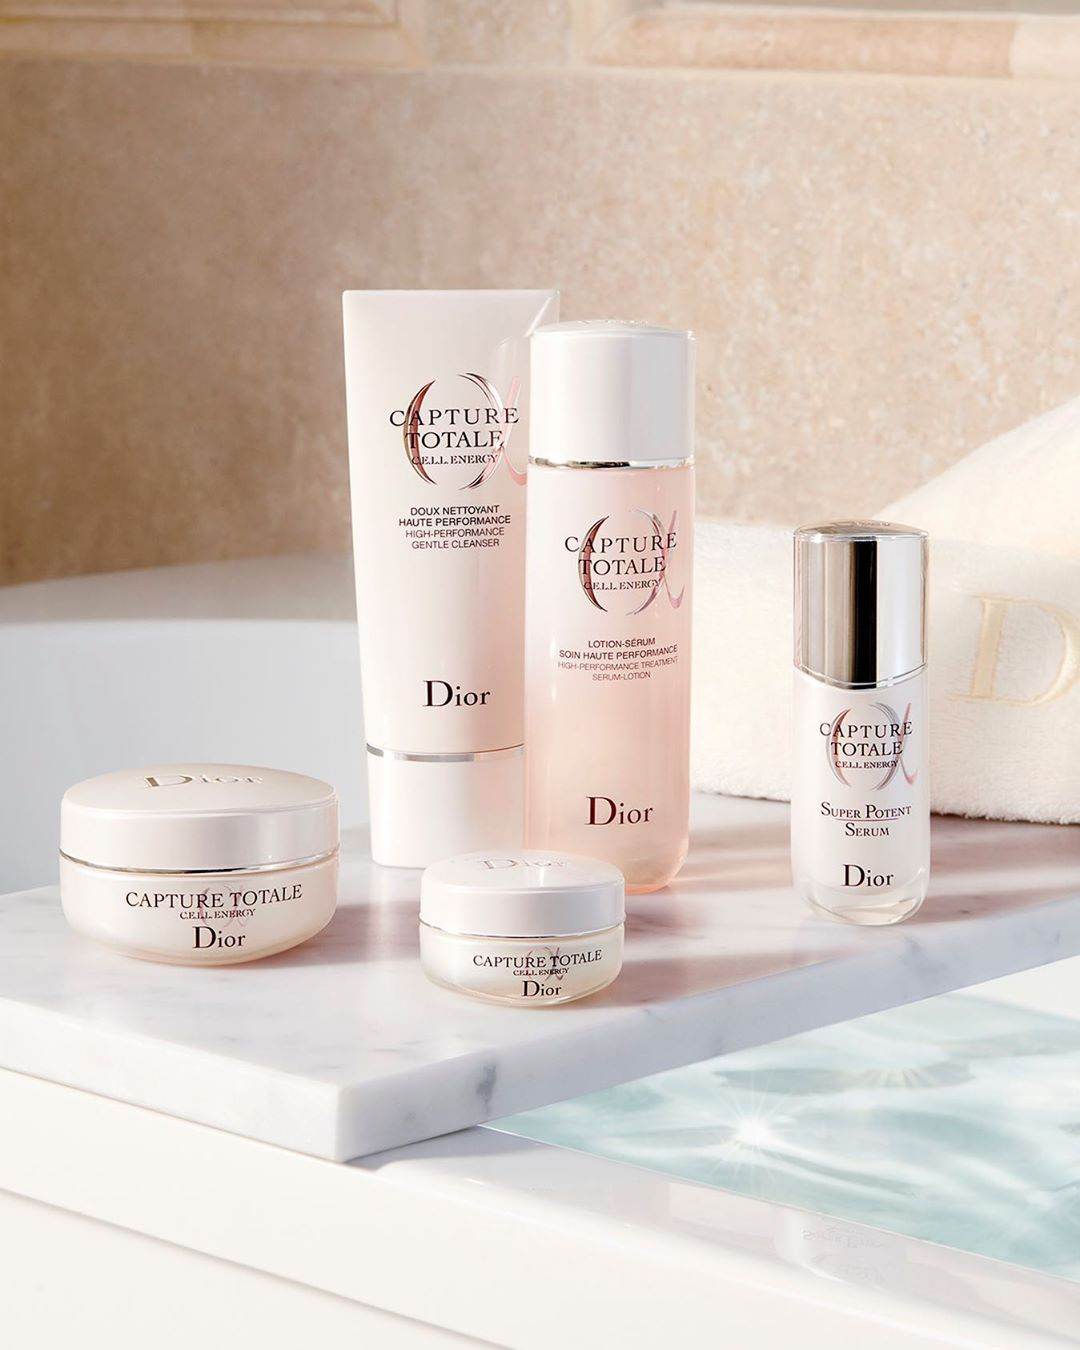 Dior capture totale cell energy skincare